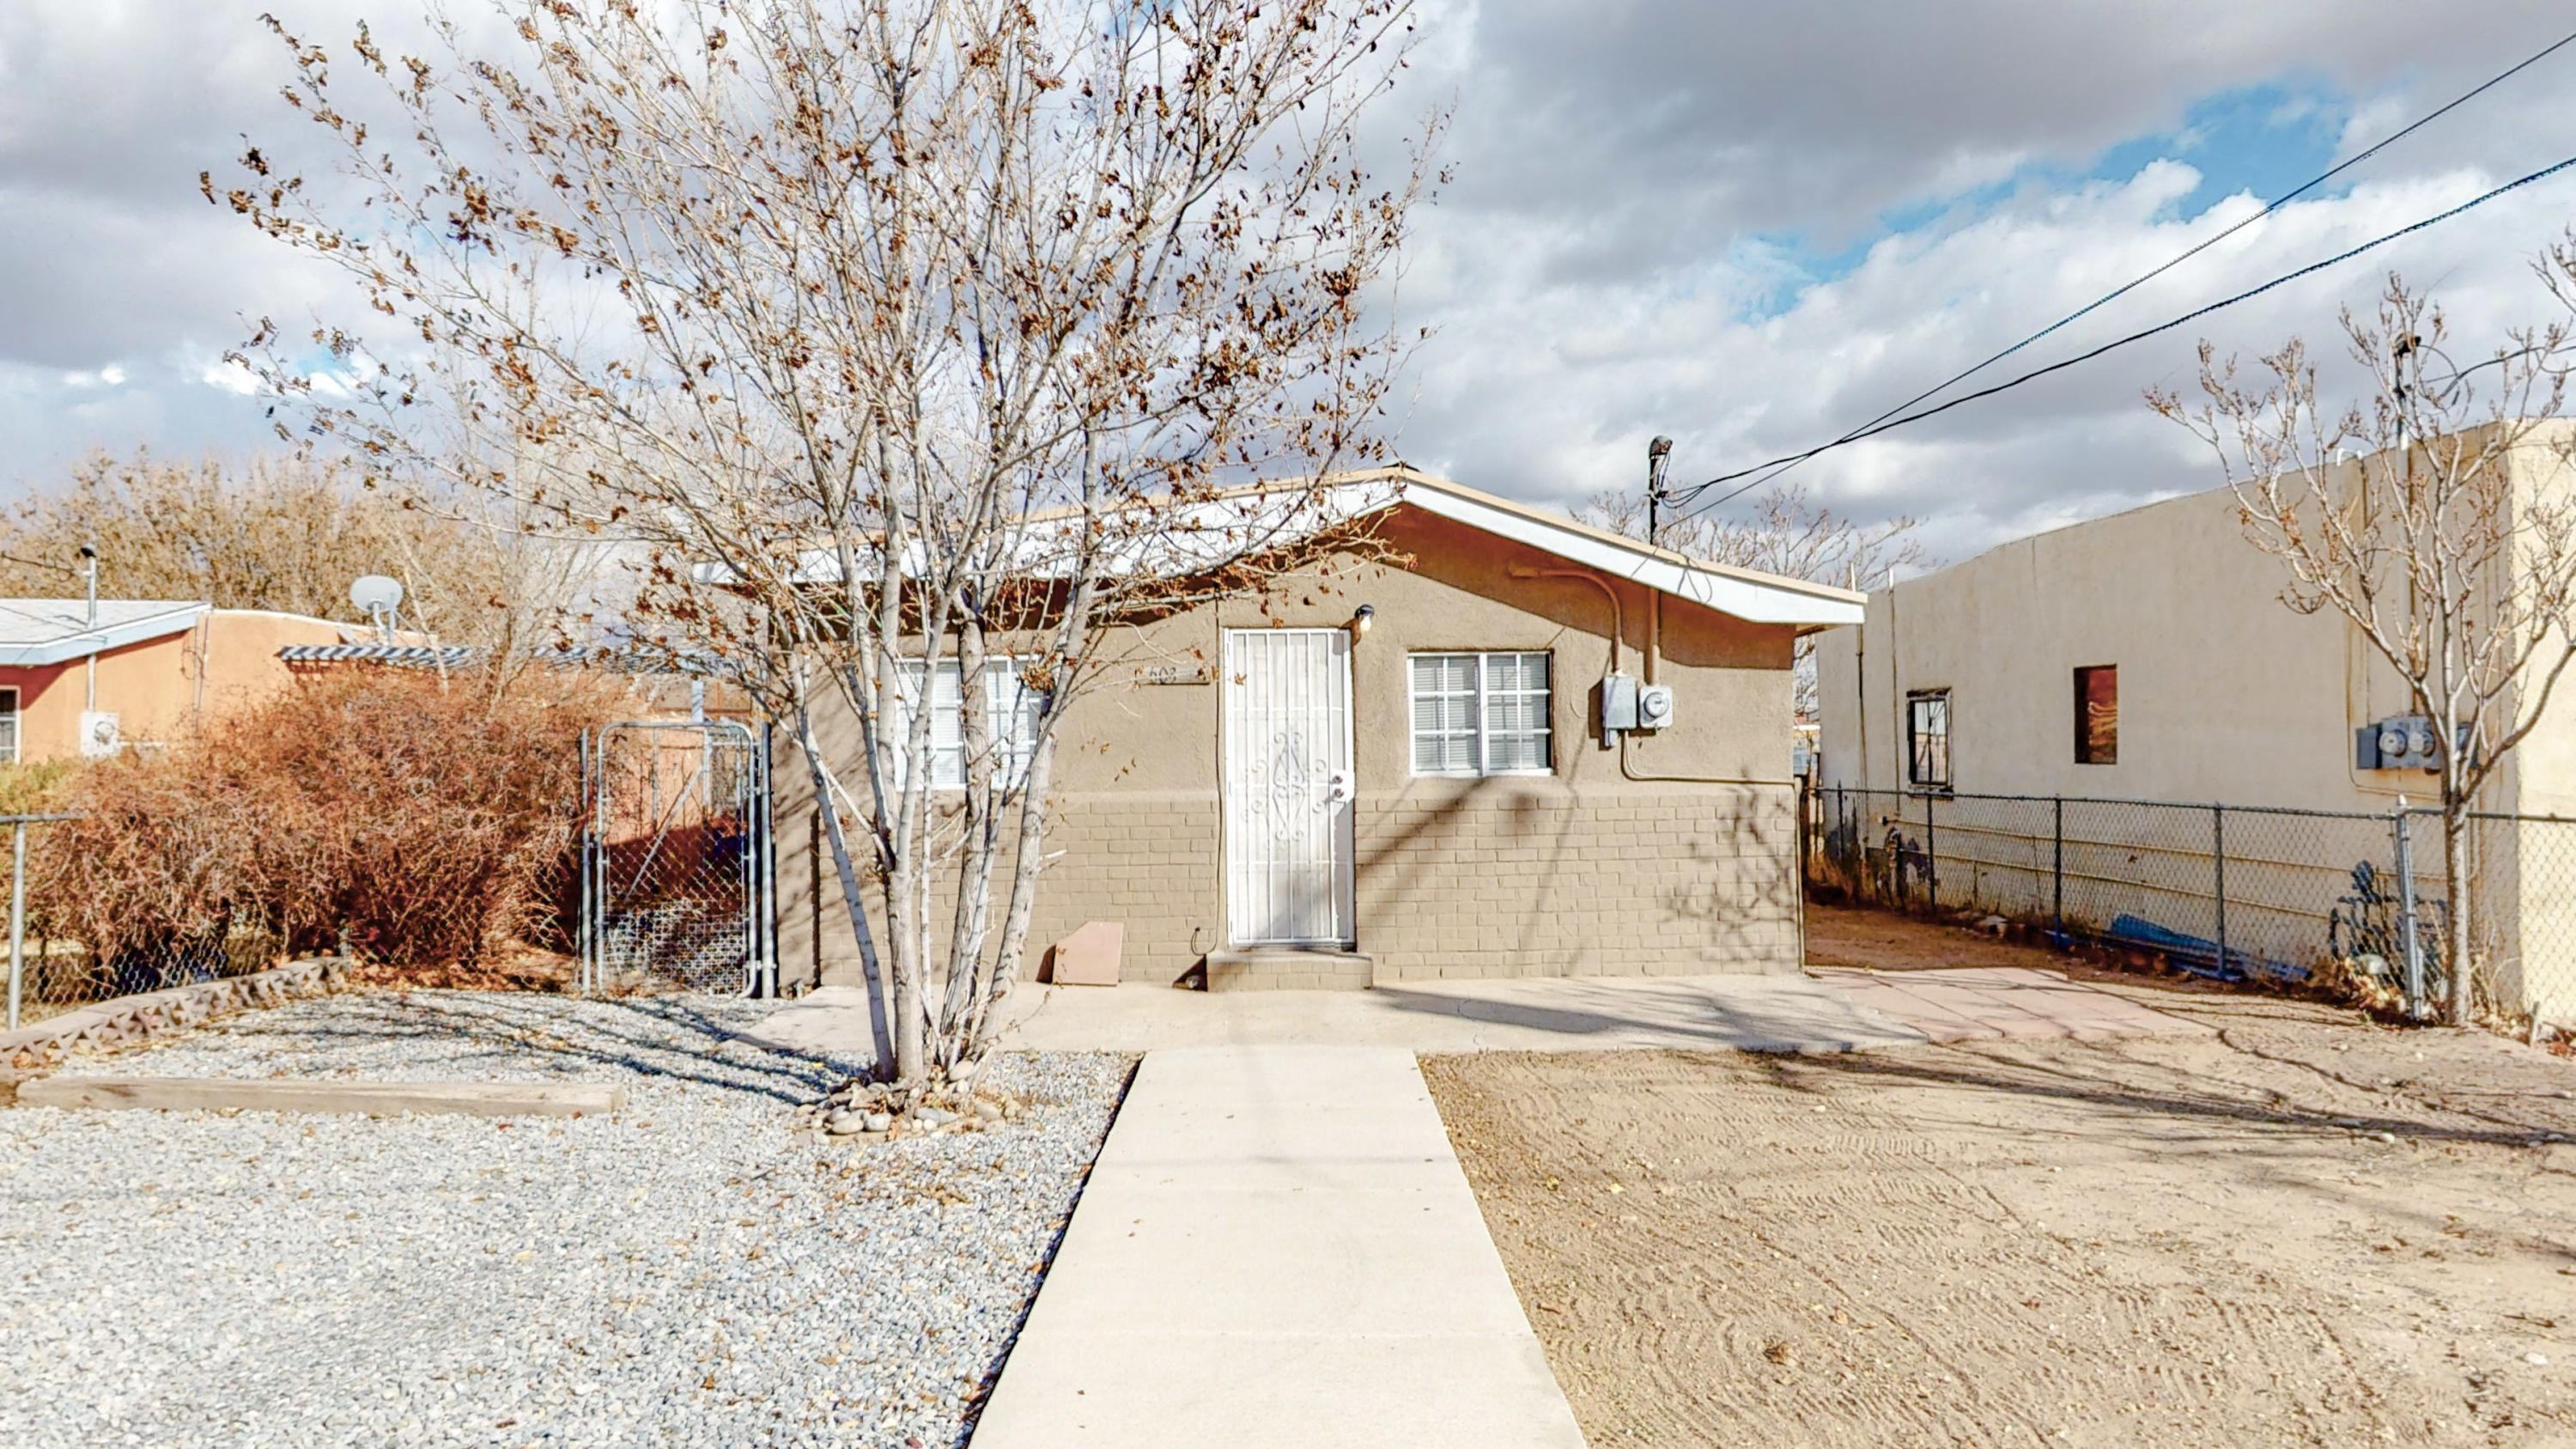 This stunning home and property is in the heart of the near North Valley. This is a large lot with a lot of room for growth and development. This home features 495 square feet with 2 Bedrooms and 1 Bathroom. Don't miss out on this great opportunity.